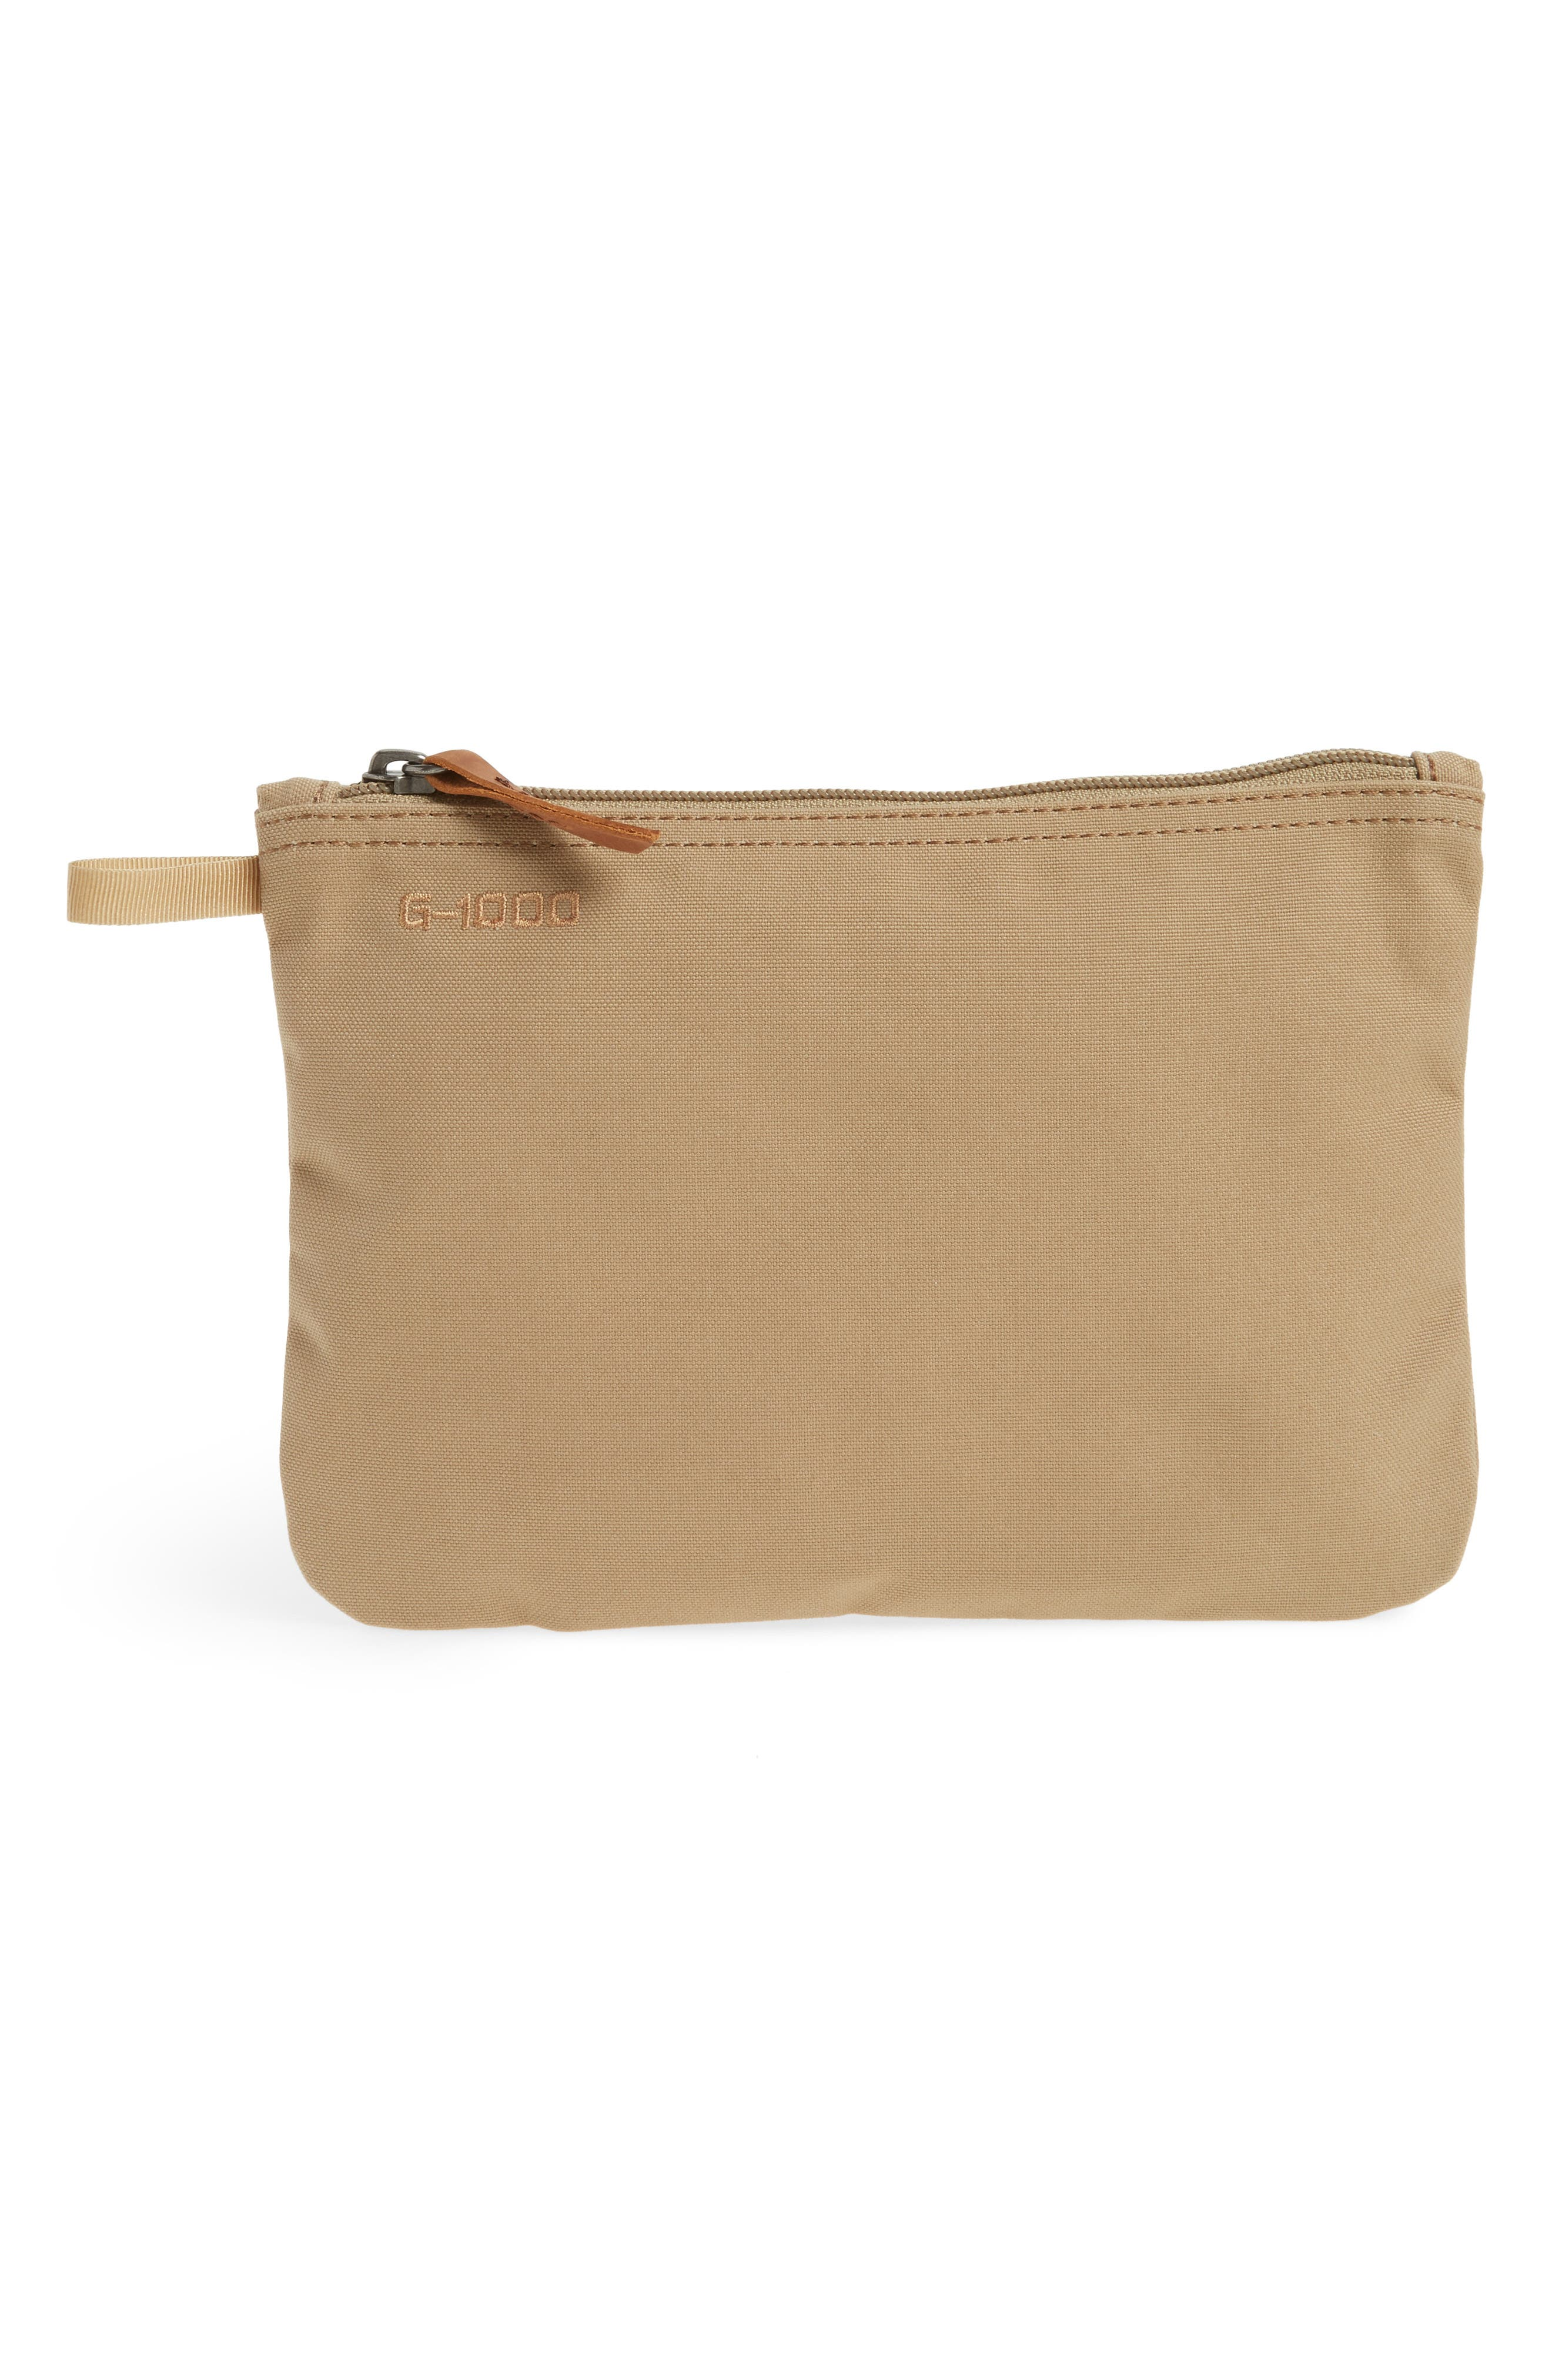 Gear Water-Resistant Pocket Pouch,                         Main,                         color, Sand